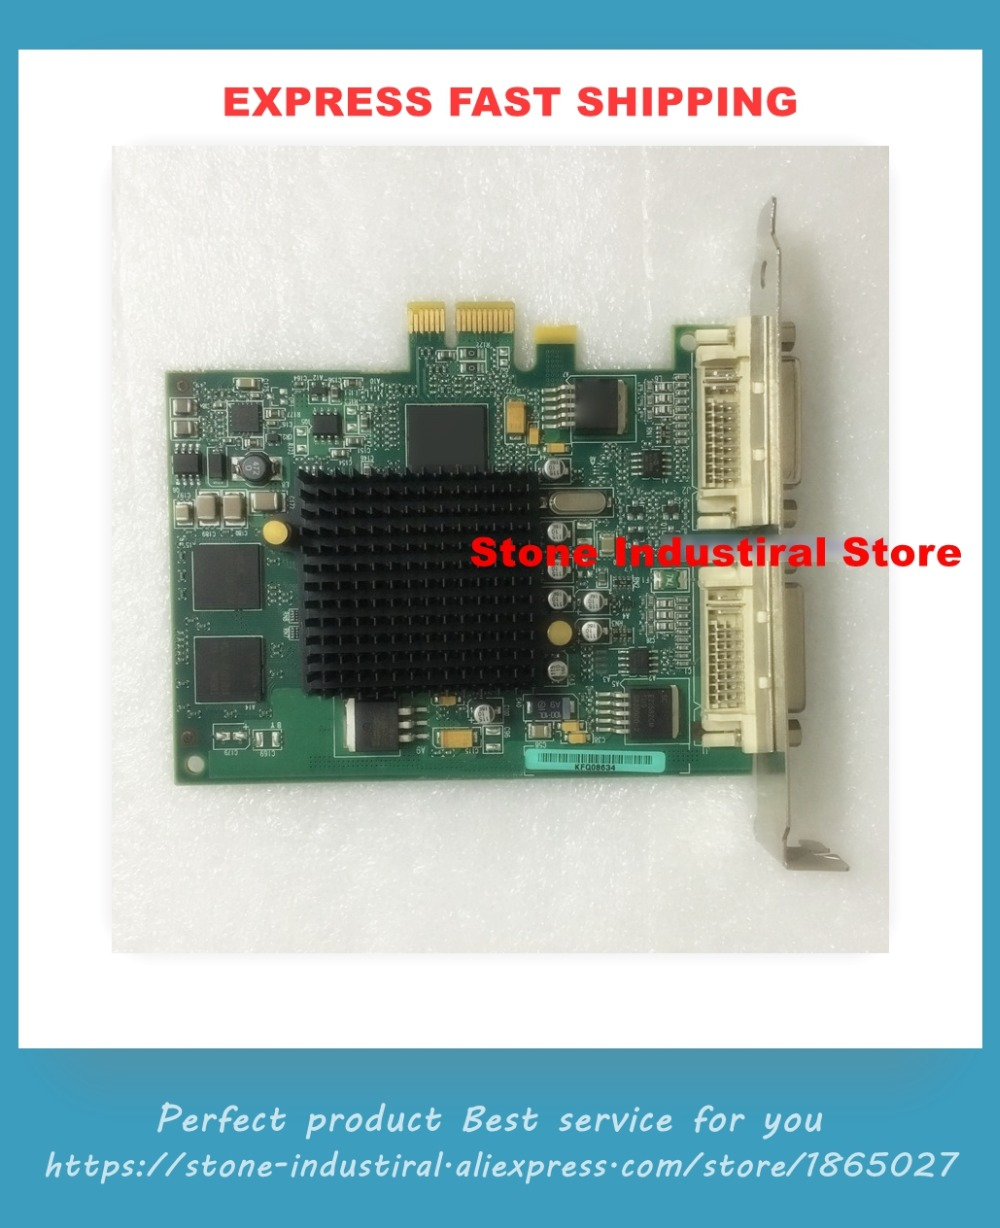 Graphics Card POWER6 POWER7 5748 GXT145 PCI-E 10N7756Graphics Card POWER6 POWER7 5748 GXT145 PCI-E 10N7756